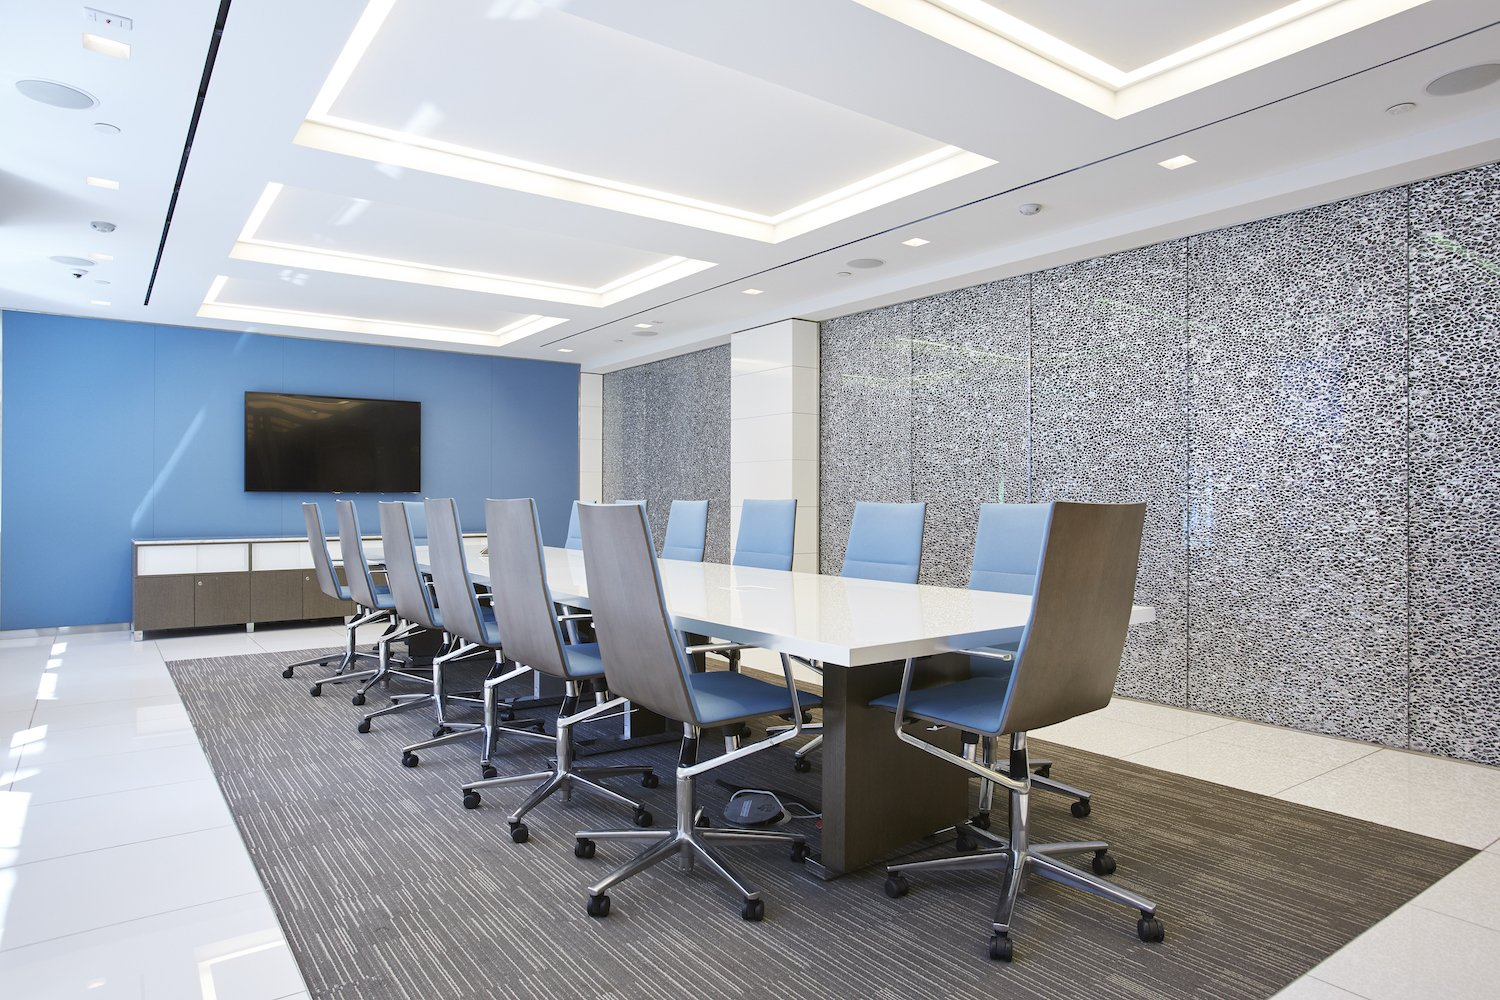 Meeting Room with long table